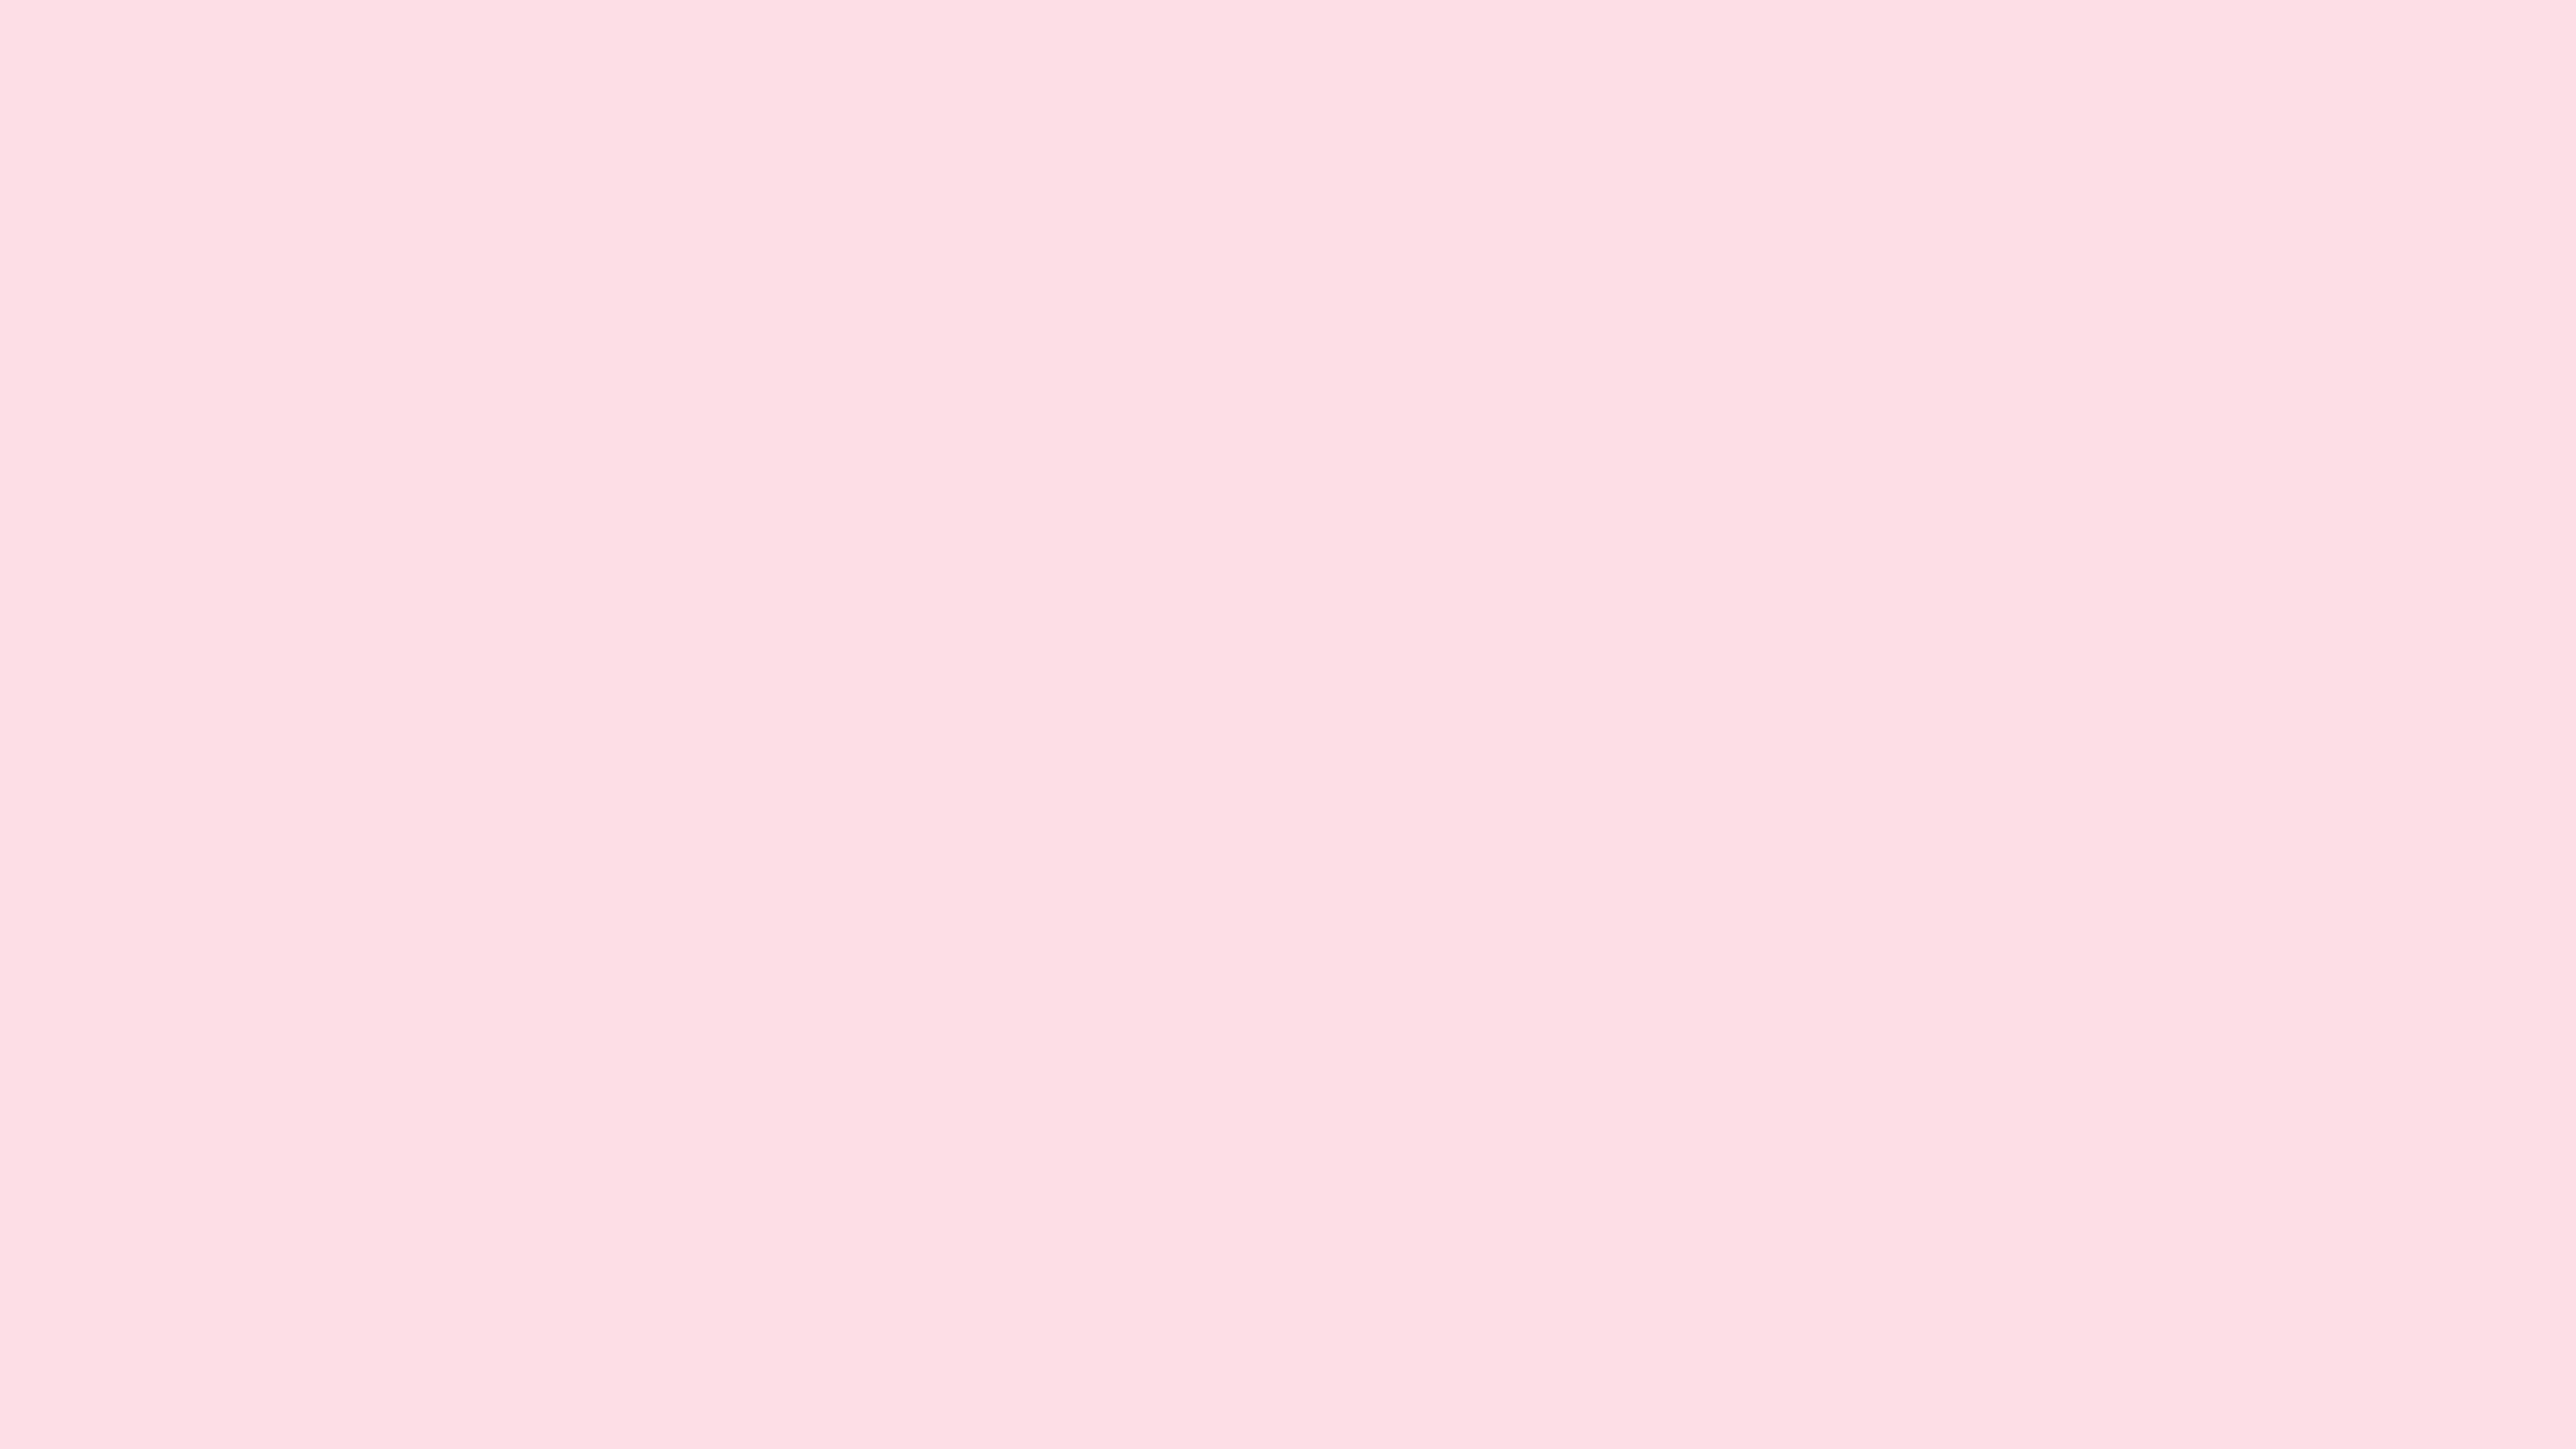 4096x2304 Piggy Pink Solid Color Background